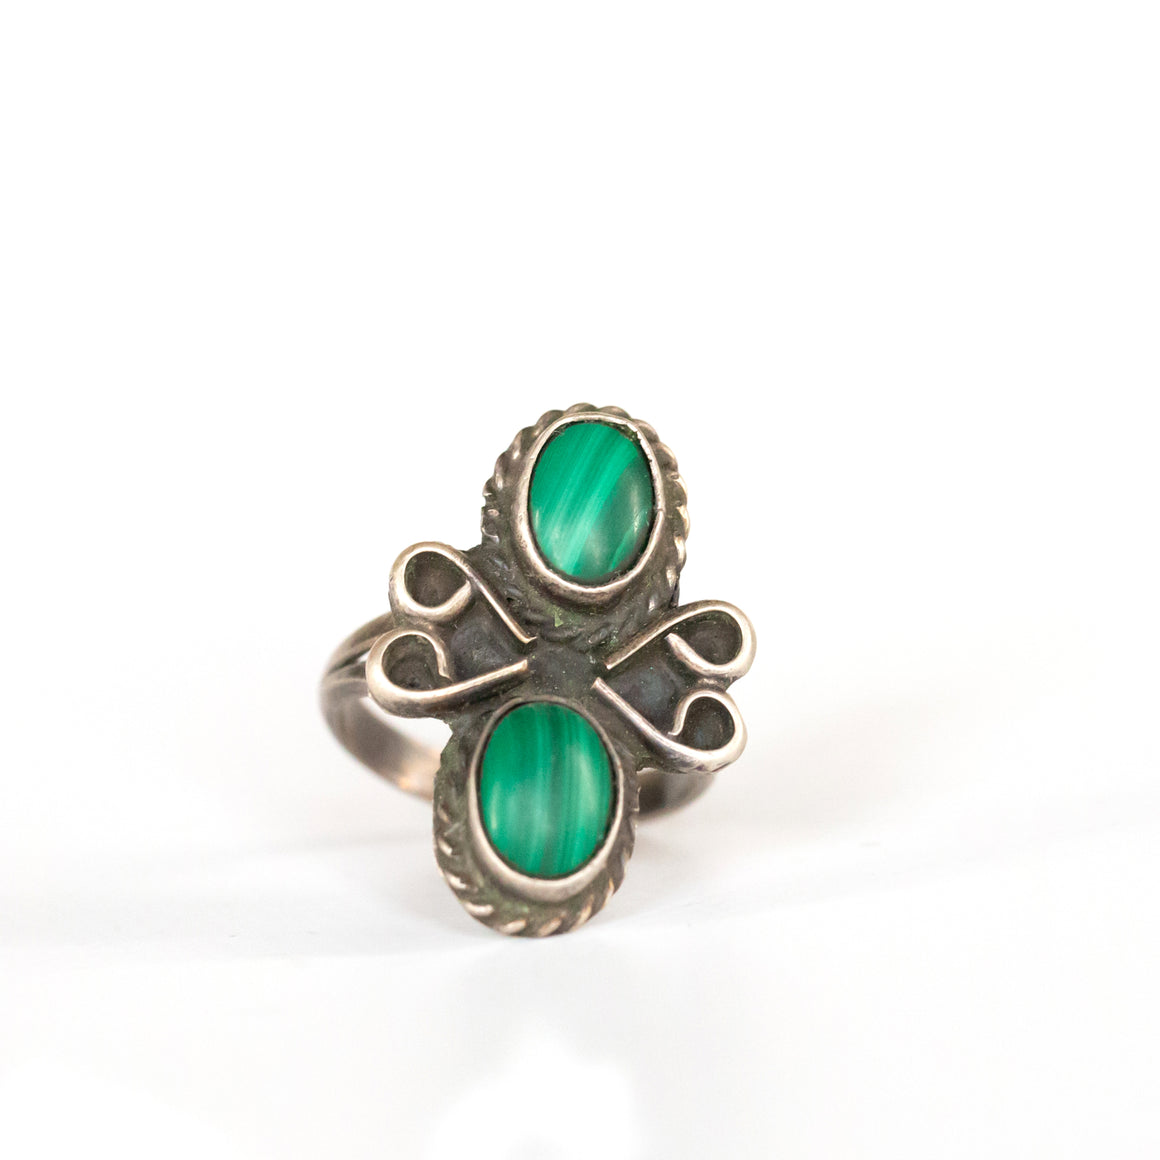 VINTAGE JEWELRY | MALACHITE STERLING RING (SIZE 5.5)